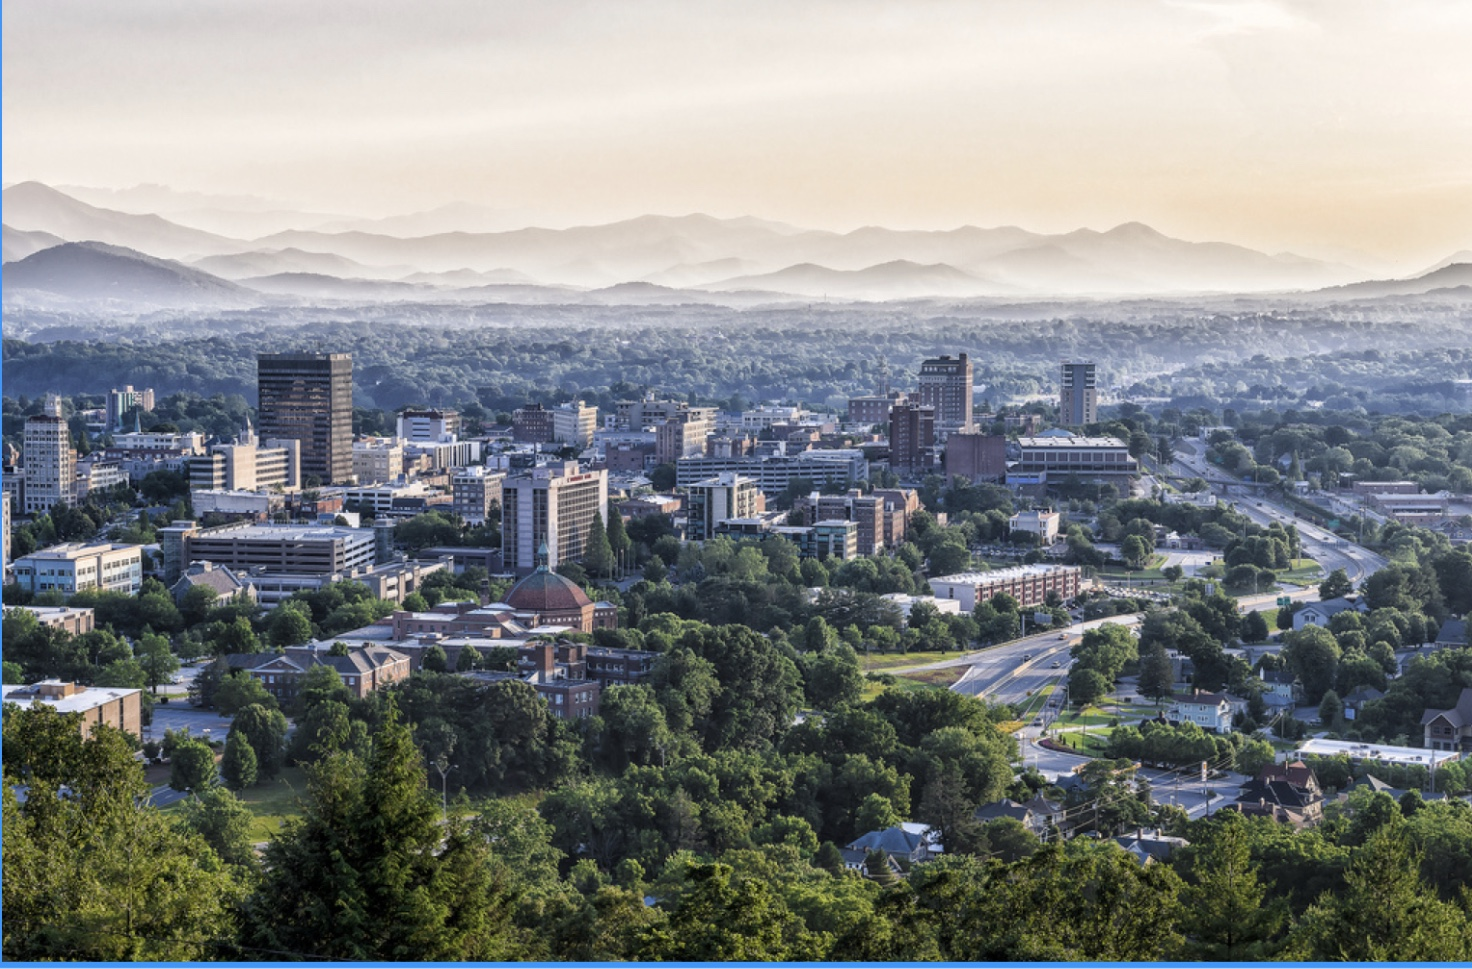 All locals can agree that Asheville is the perfect place to live with the serene mountains and exciting atmosphere. Be sure to stop by and look out for fun things to do in this small town!